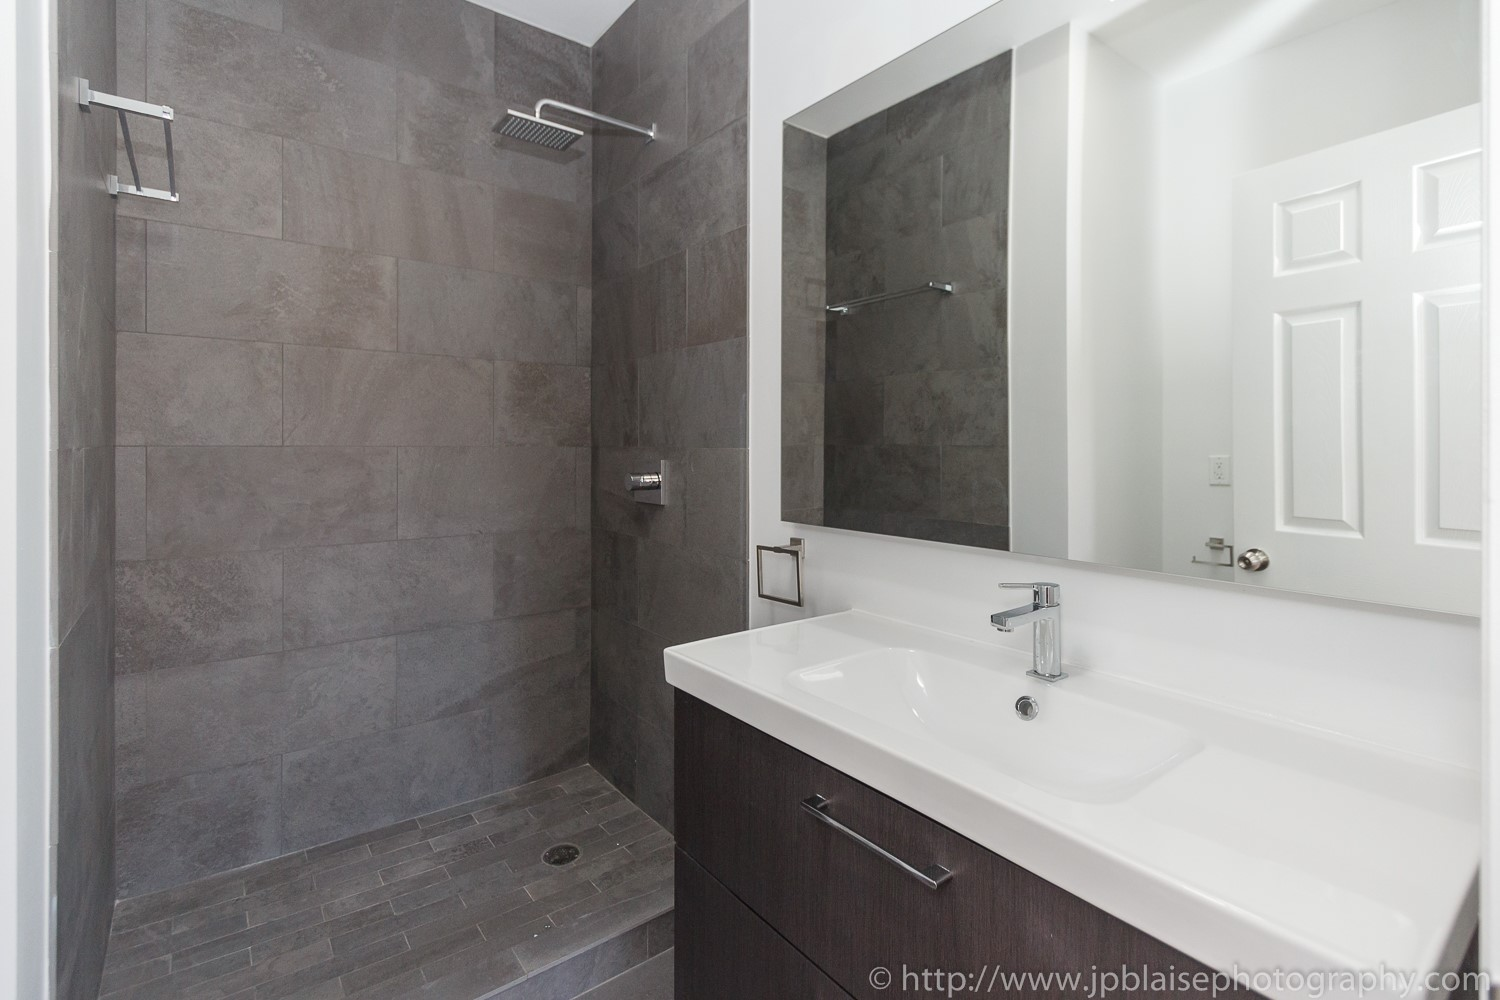 Bathroom design picture Apartment photographer bedford stuyvesant apartment New York brooklyn photography